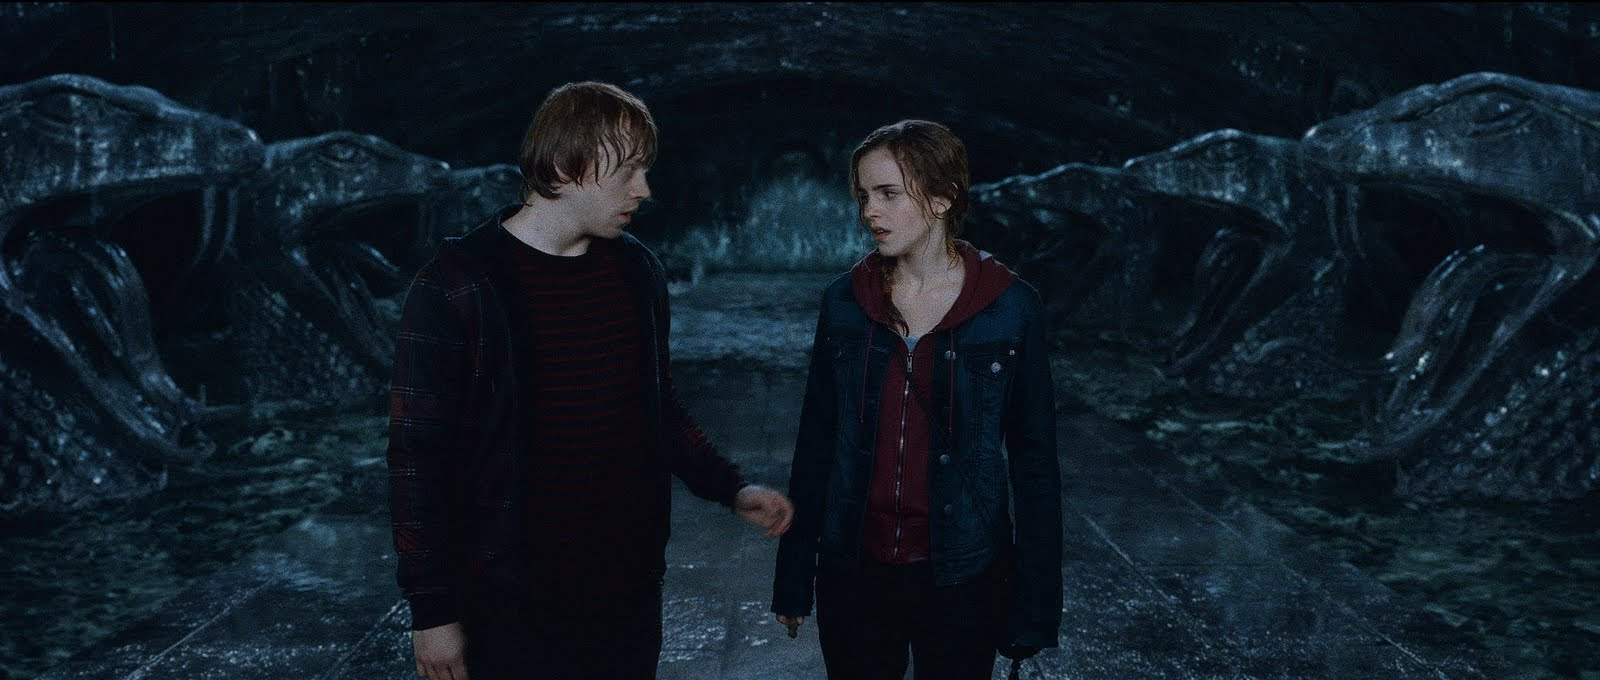 harry-potter-and-the-deathly-hallows-part-2-movie-photo-72